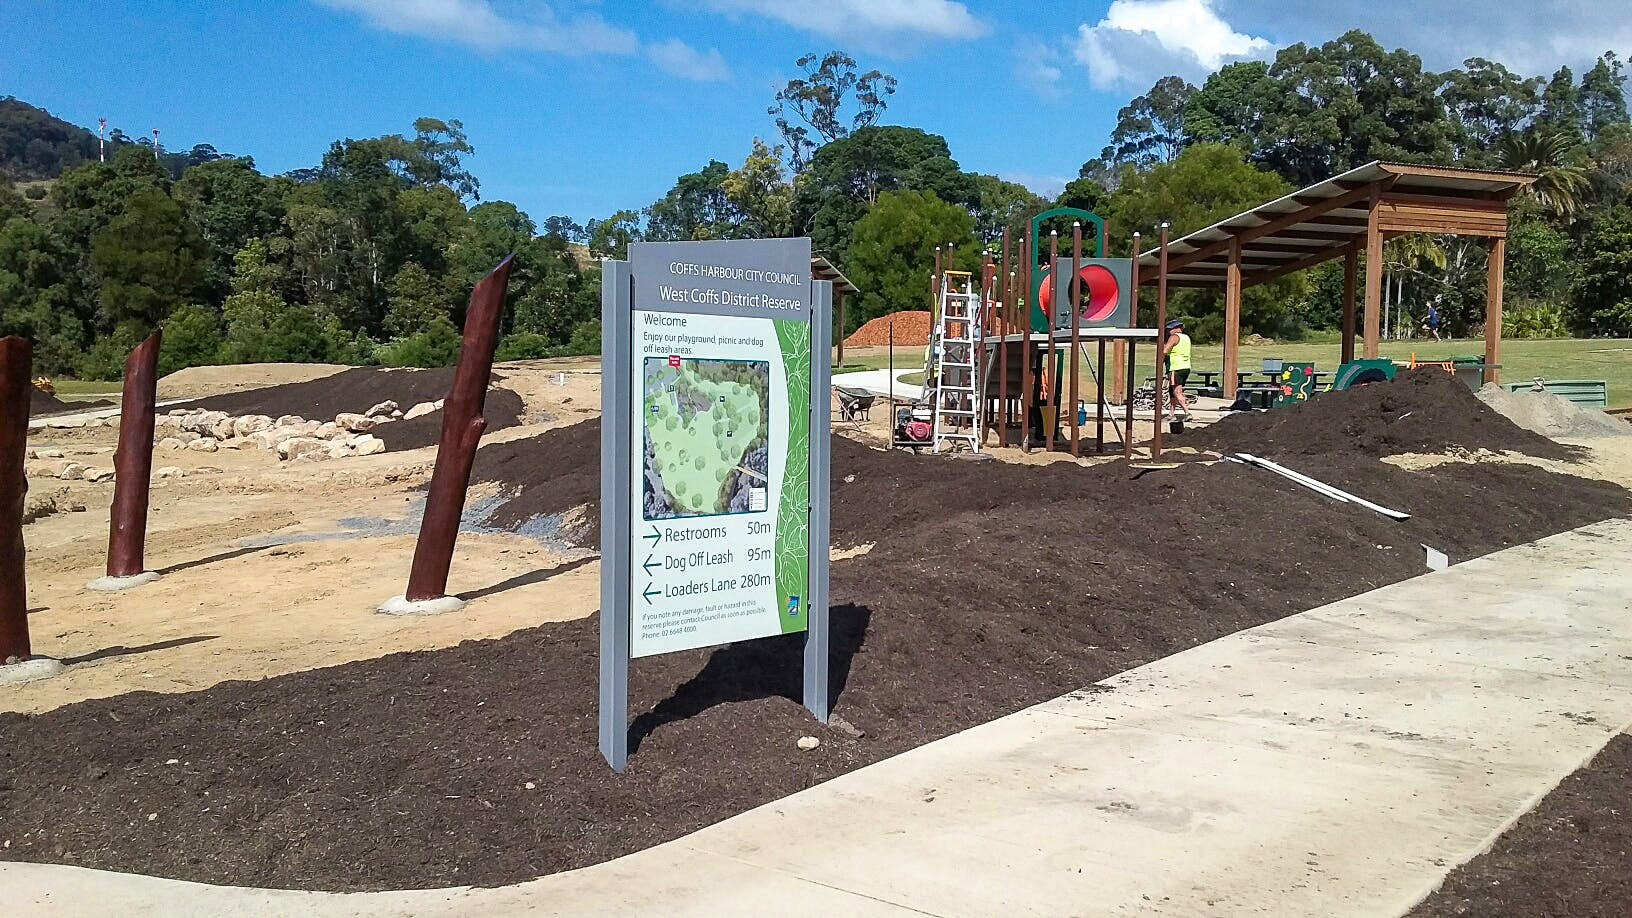 Welcome to West Coffs District Park - Opening Soon!